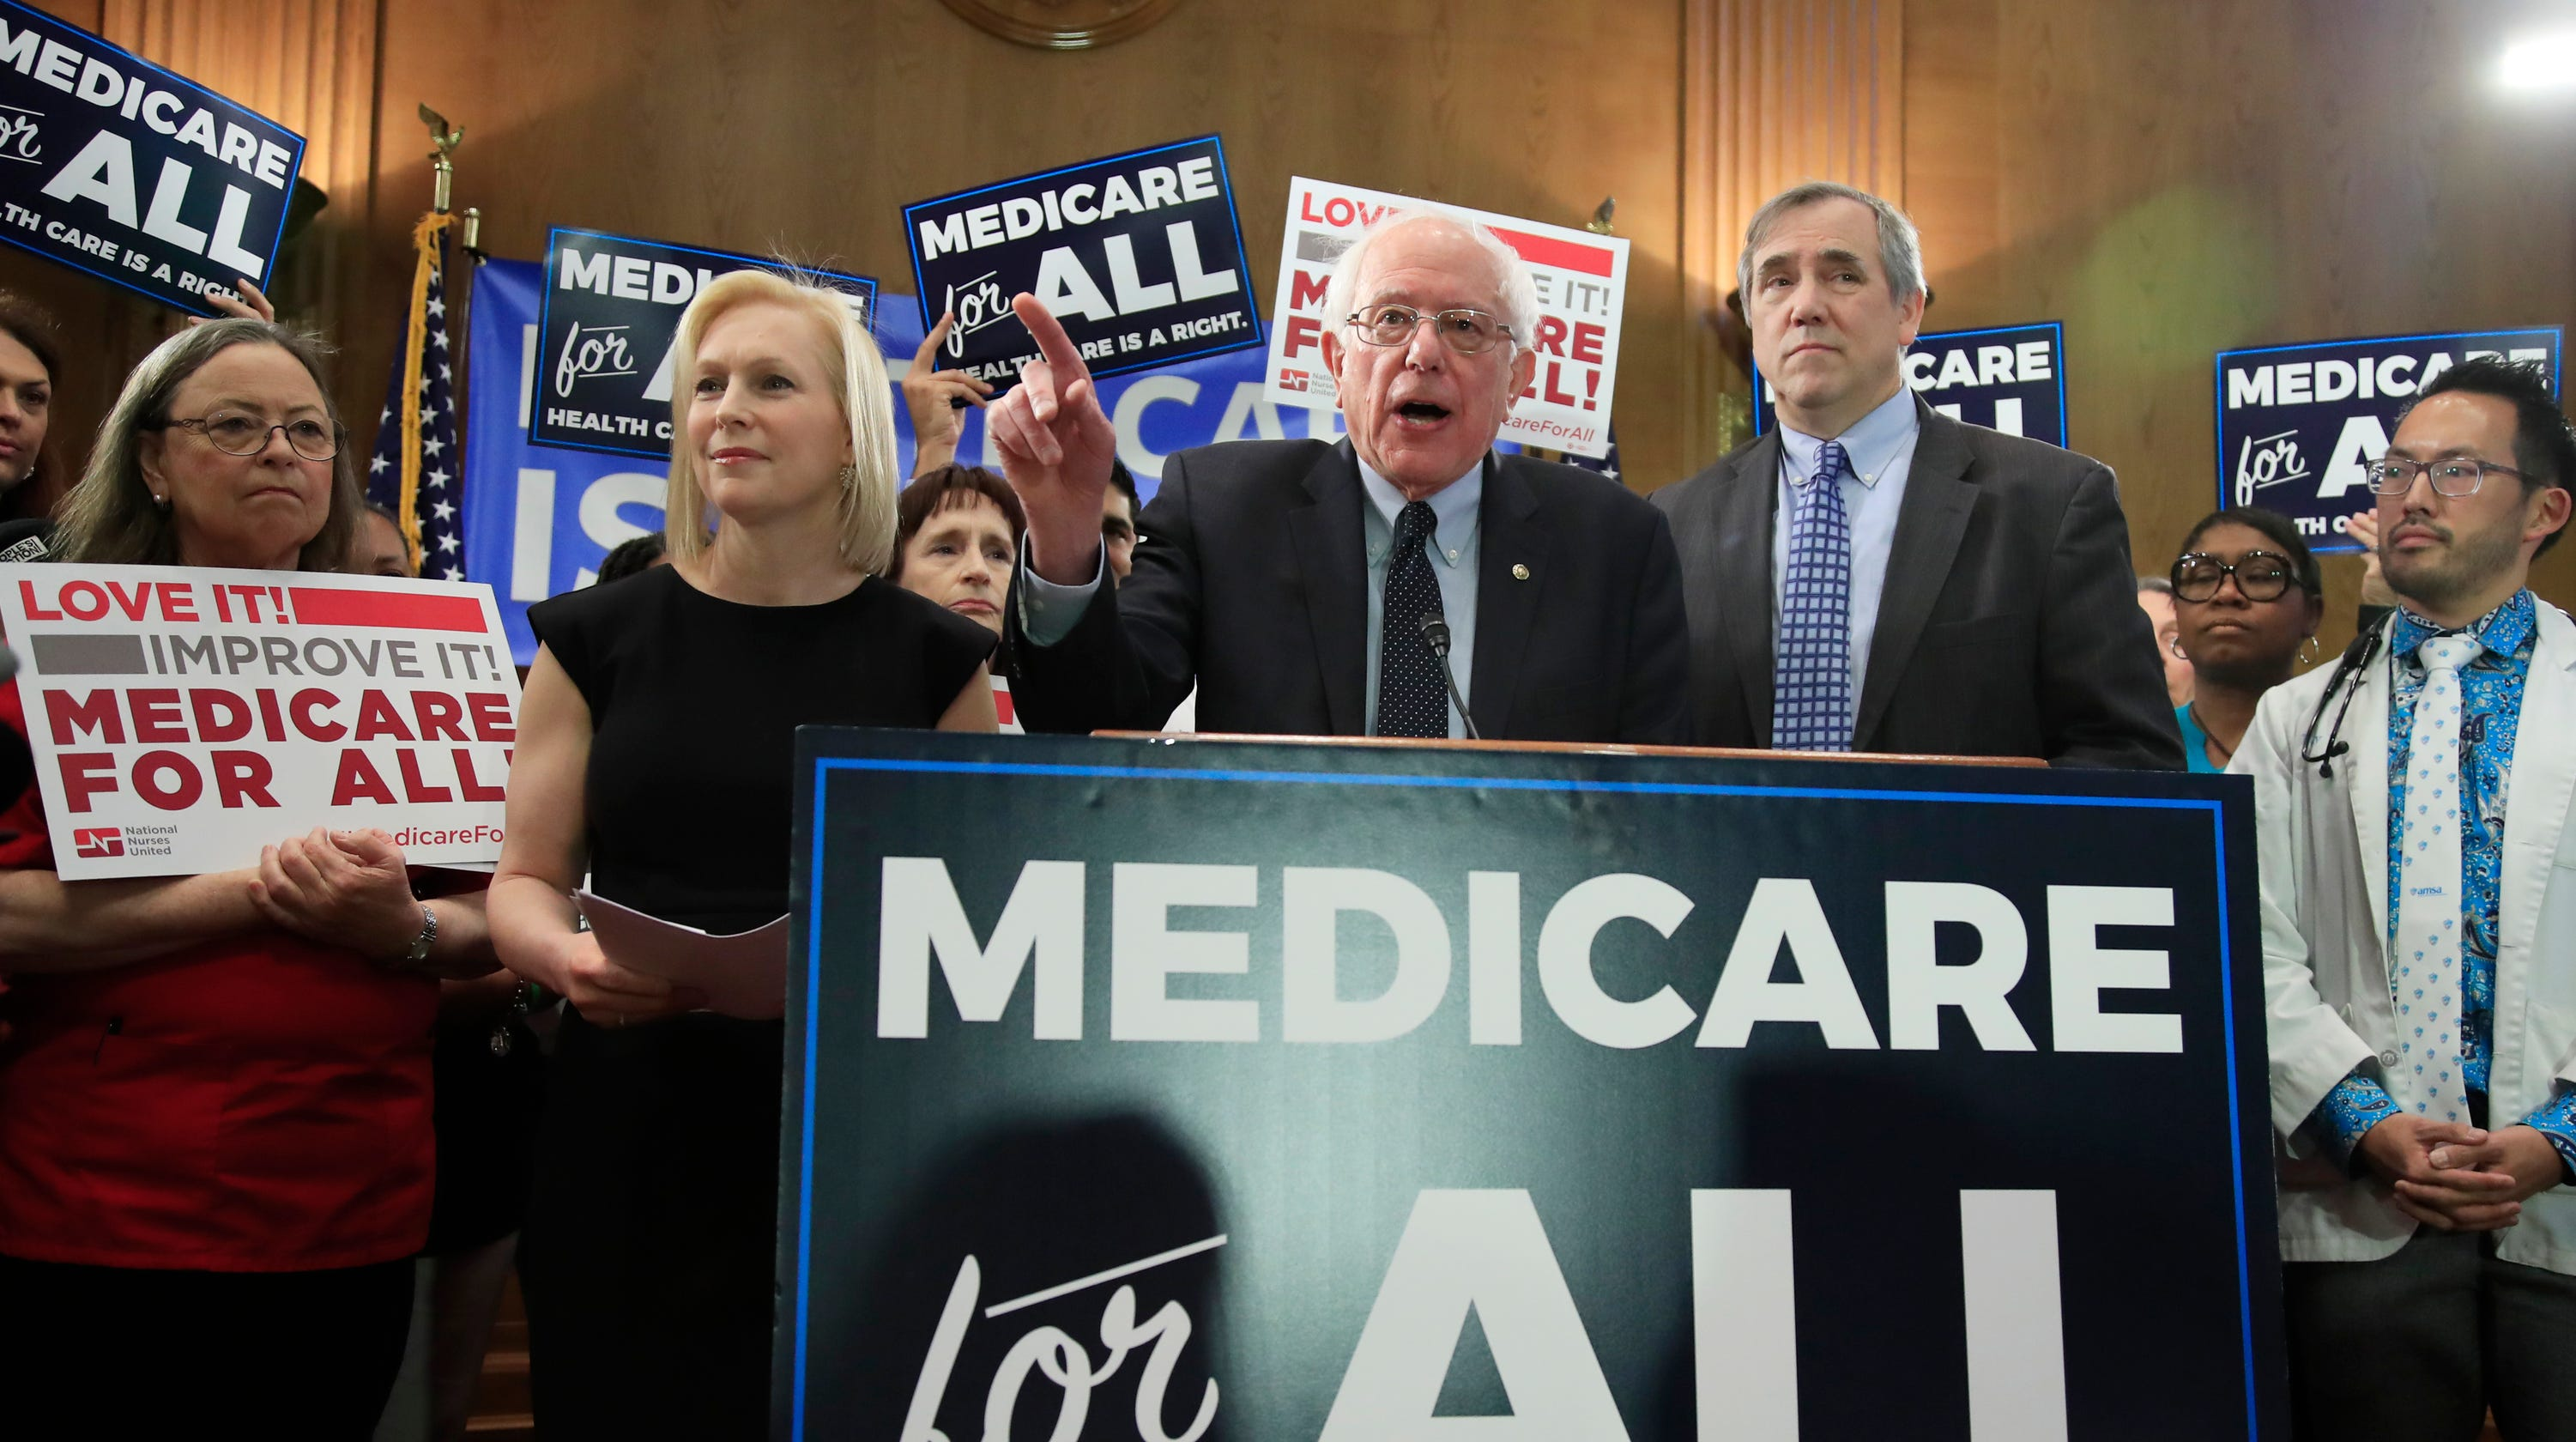 Medicare for All would be even worse than private insurance: Doctor